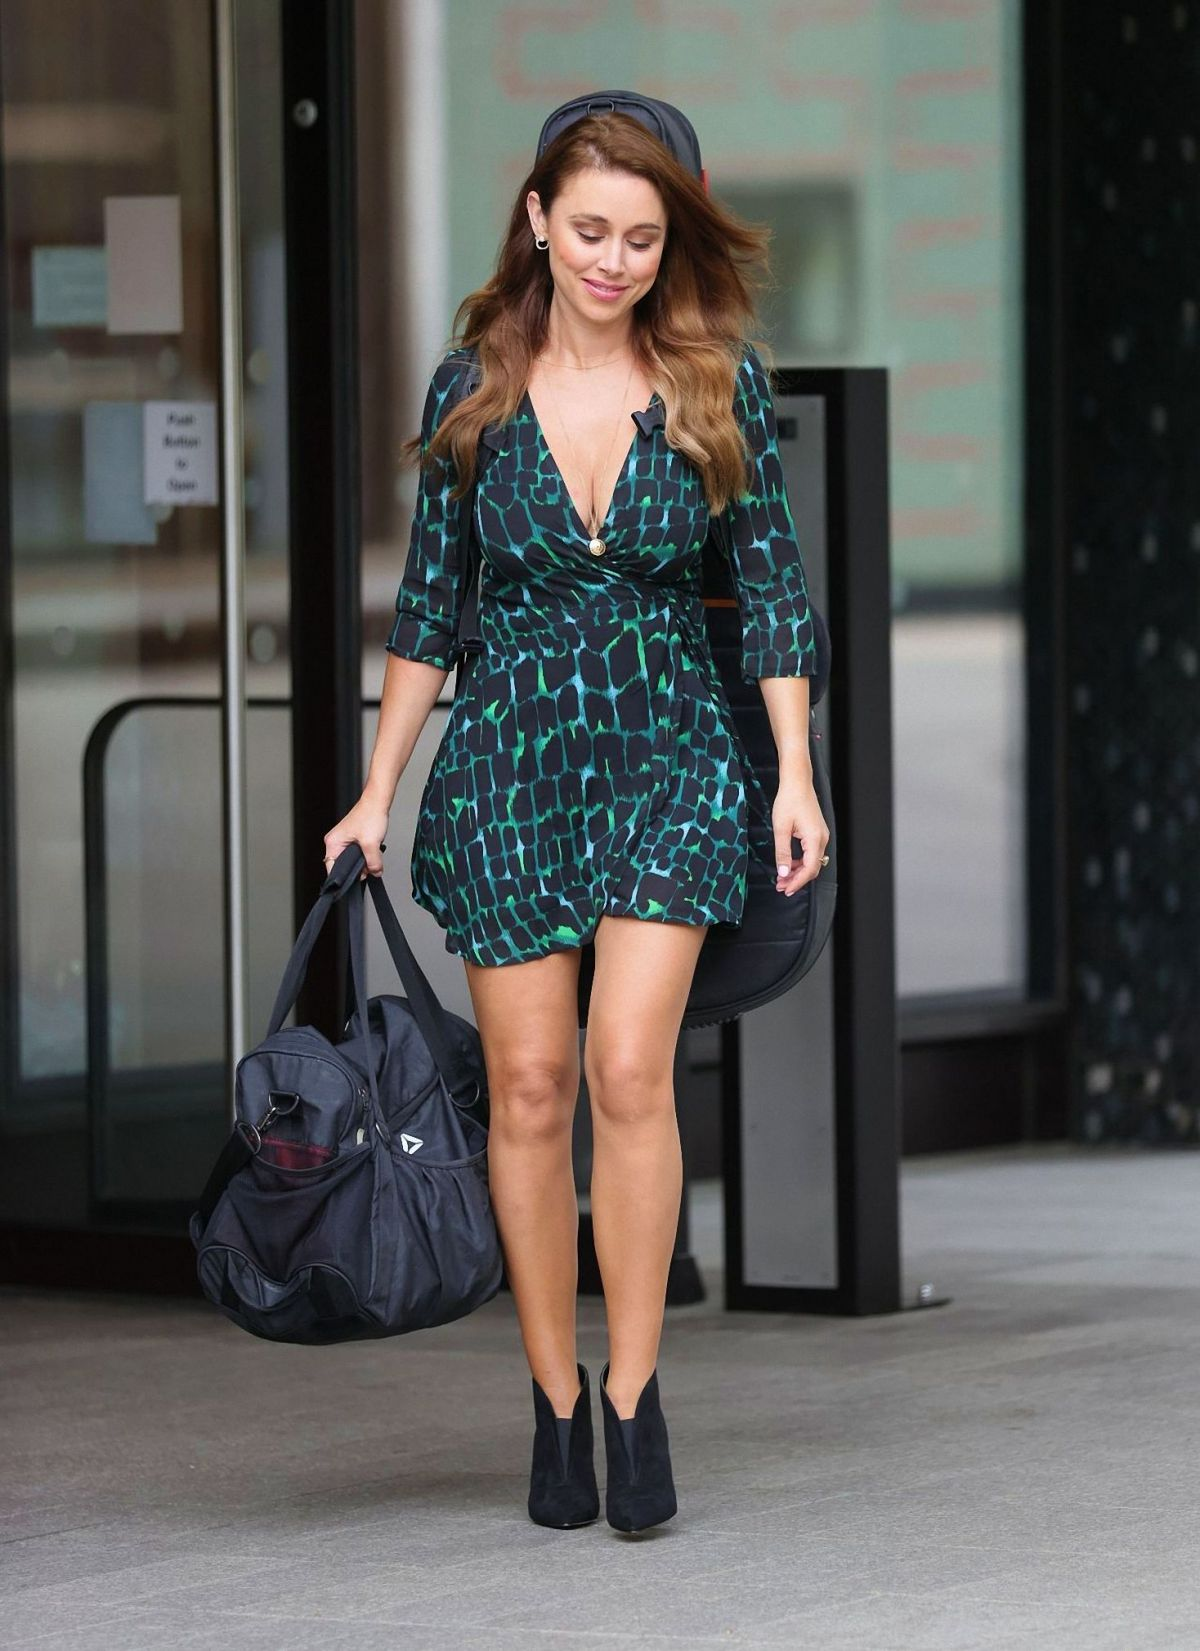 Una Healy Out About London